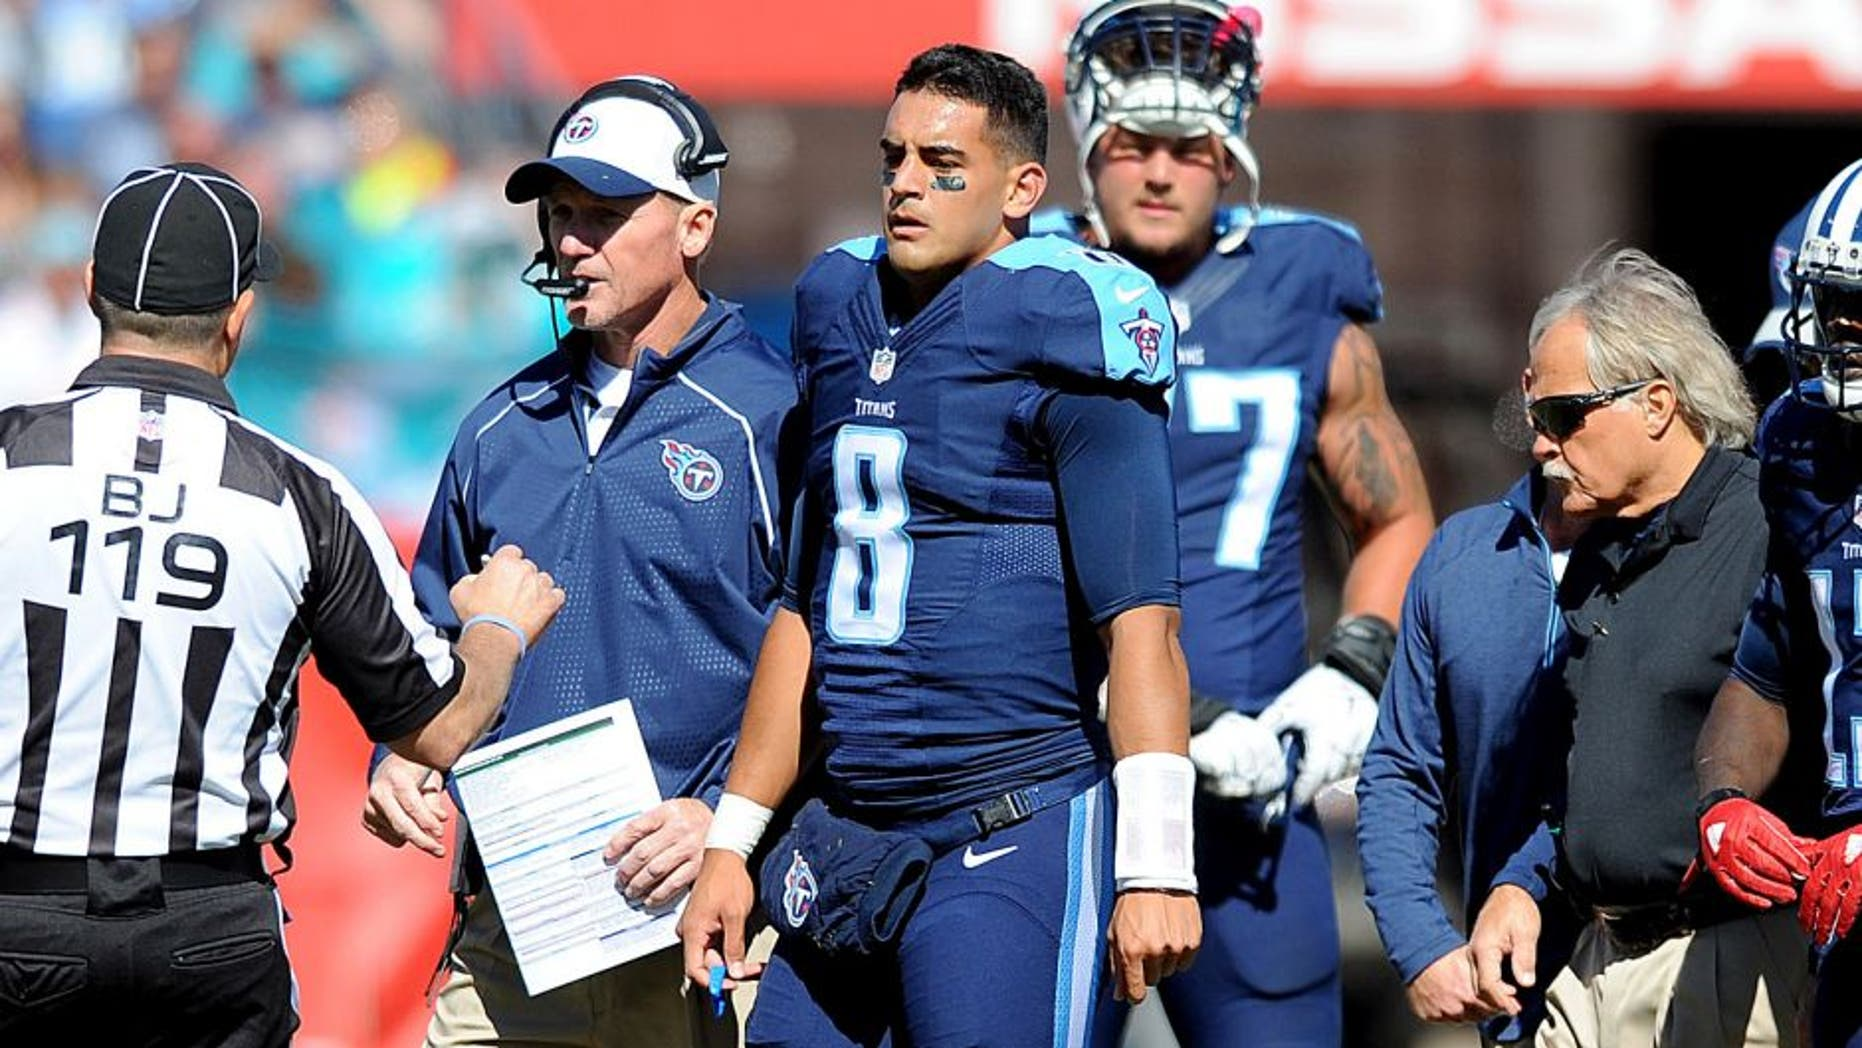 Oct 18, 2015; Nashville, TN, USA; Tennessee Titans quarterback Marcus Mariota (8) is helped off the field after an injury during the first half against the Miami Dolphins at Nissan Stadium. Mandatory Credit: Christopher Hanewinckel-USA TODAY Sports